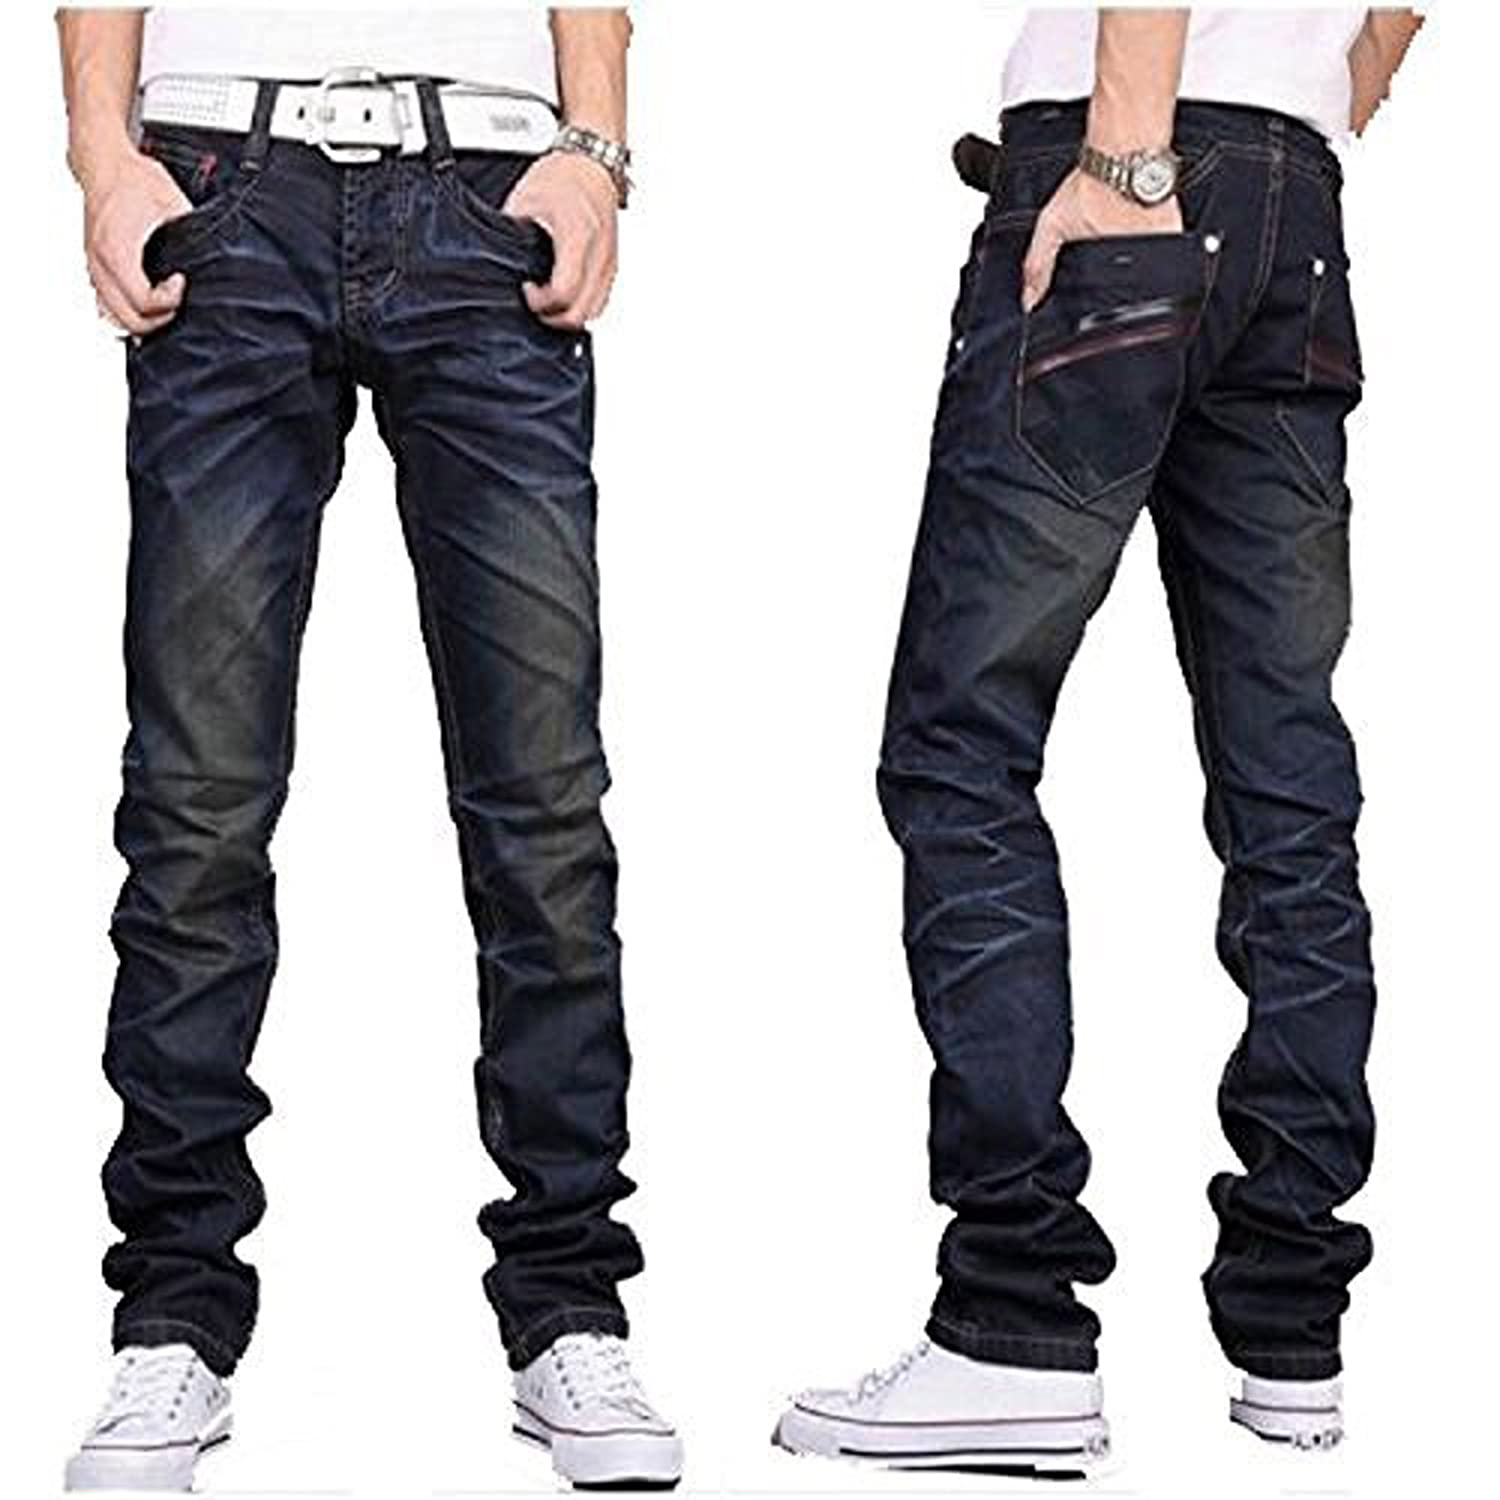 d6e0a17b5b0e New Men s Designer jeans Casual Dark Blue F002 Denim Mens Pant Trousers  Jeans Blue F002 W38 x L32  Amazon.ca  Clothing   Accessories